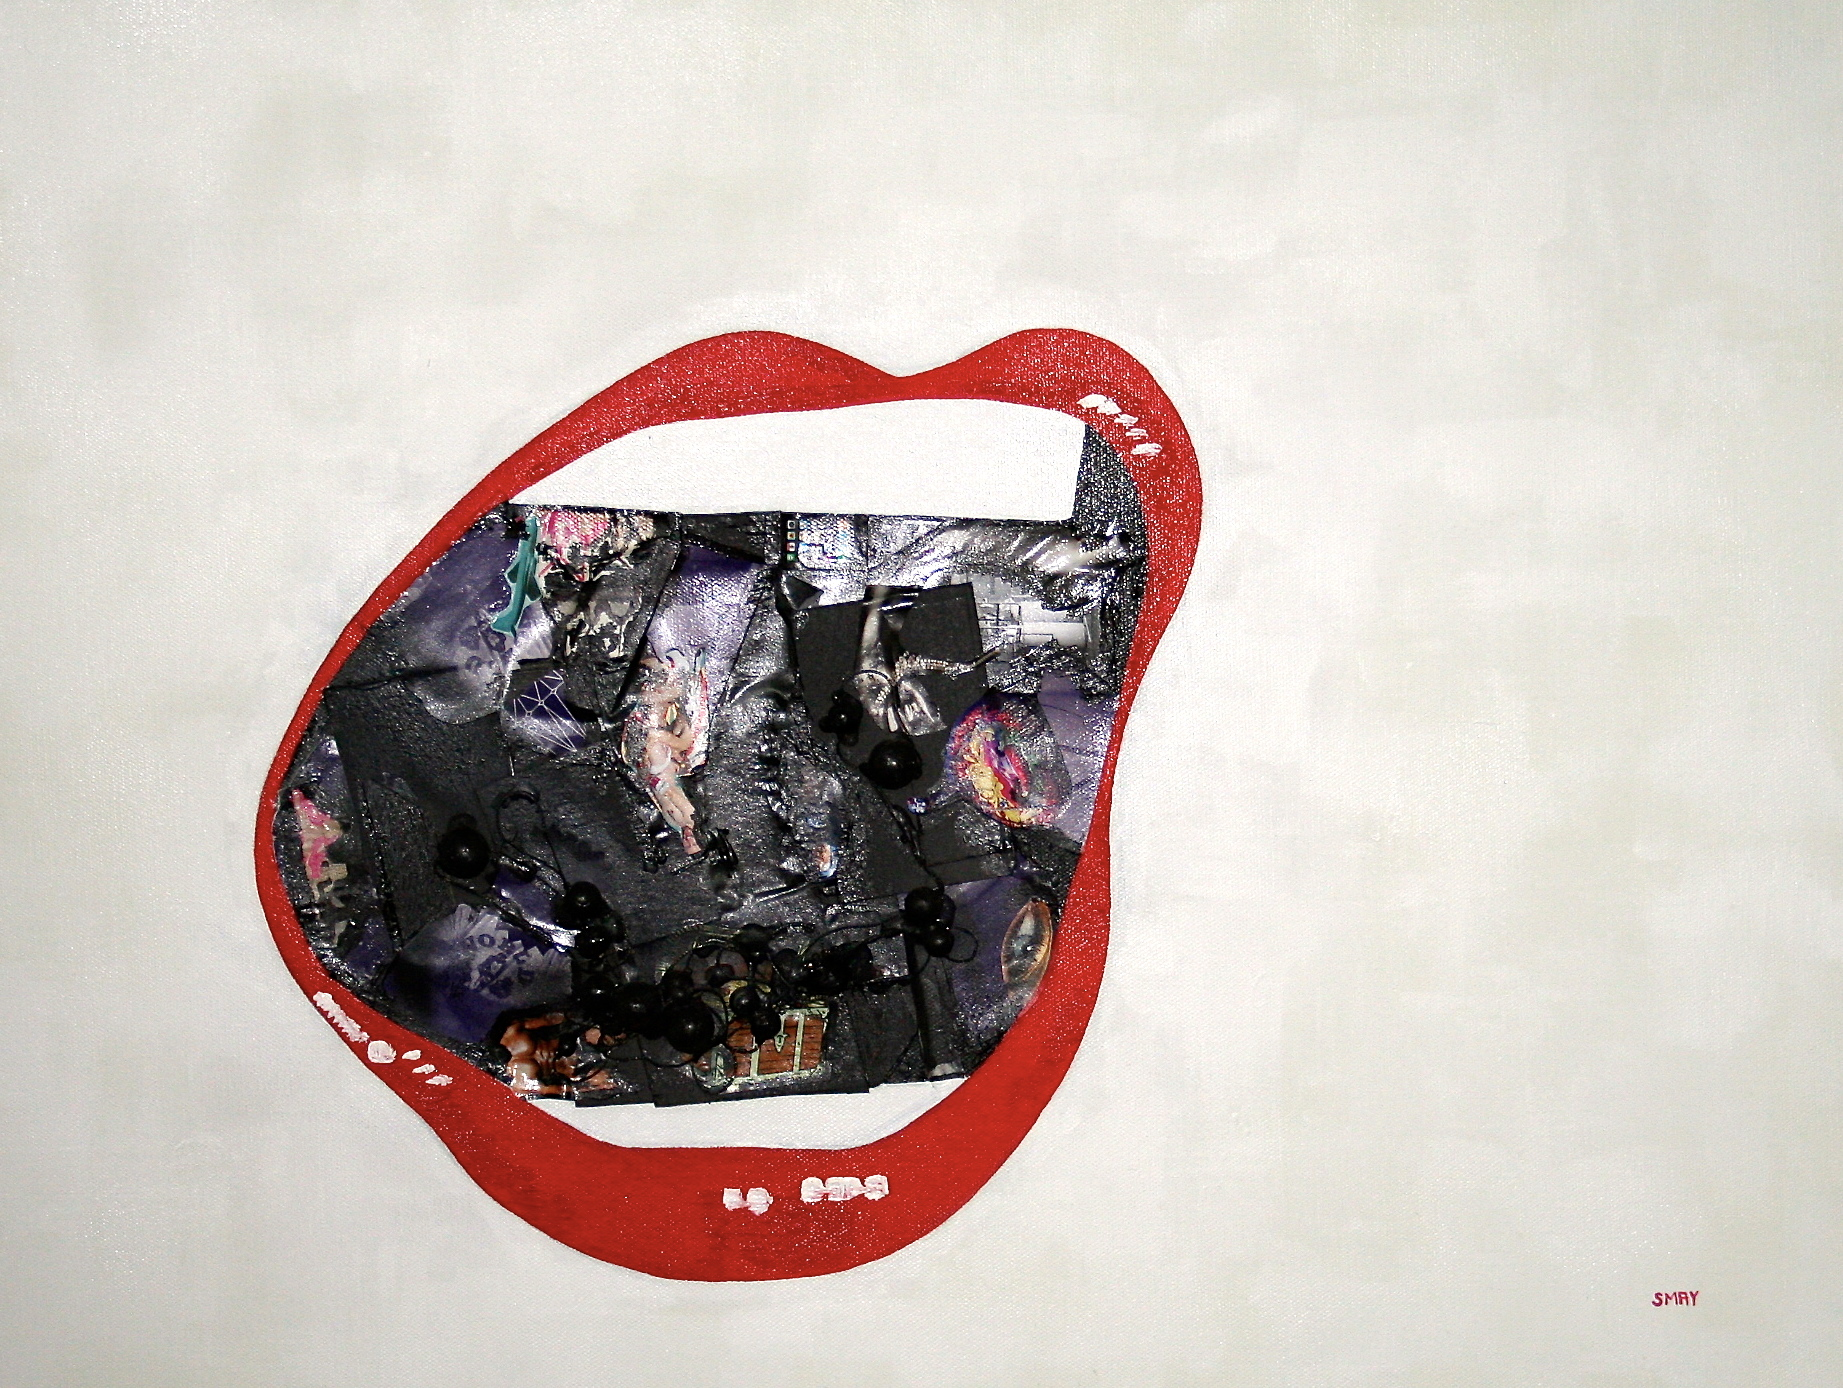 Kiss me, gag me (red)  2012 Mixed media on canvas   61 x 42cm